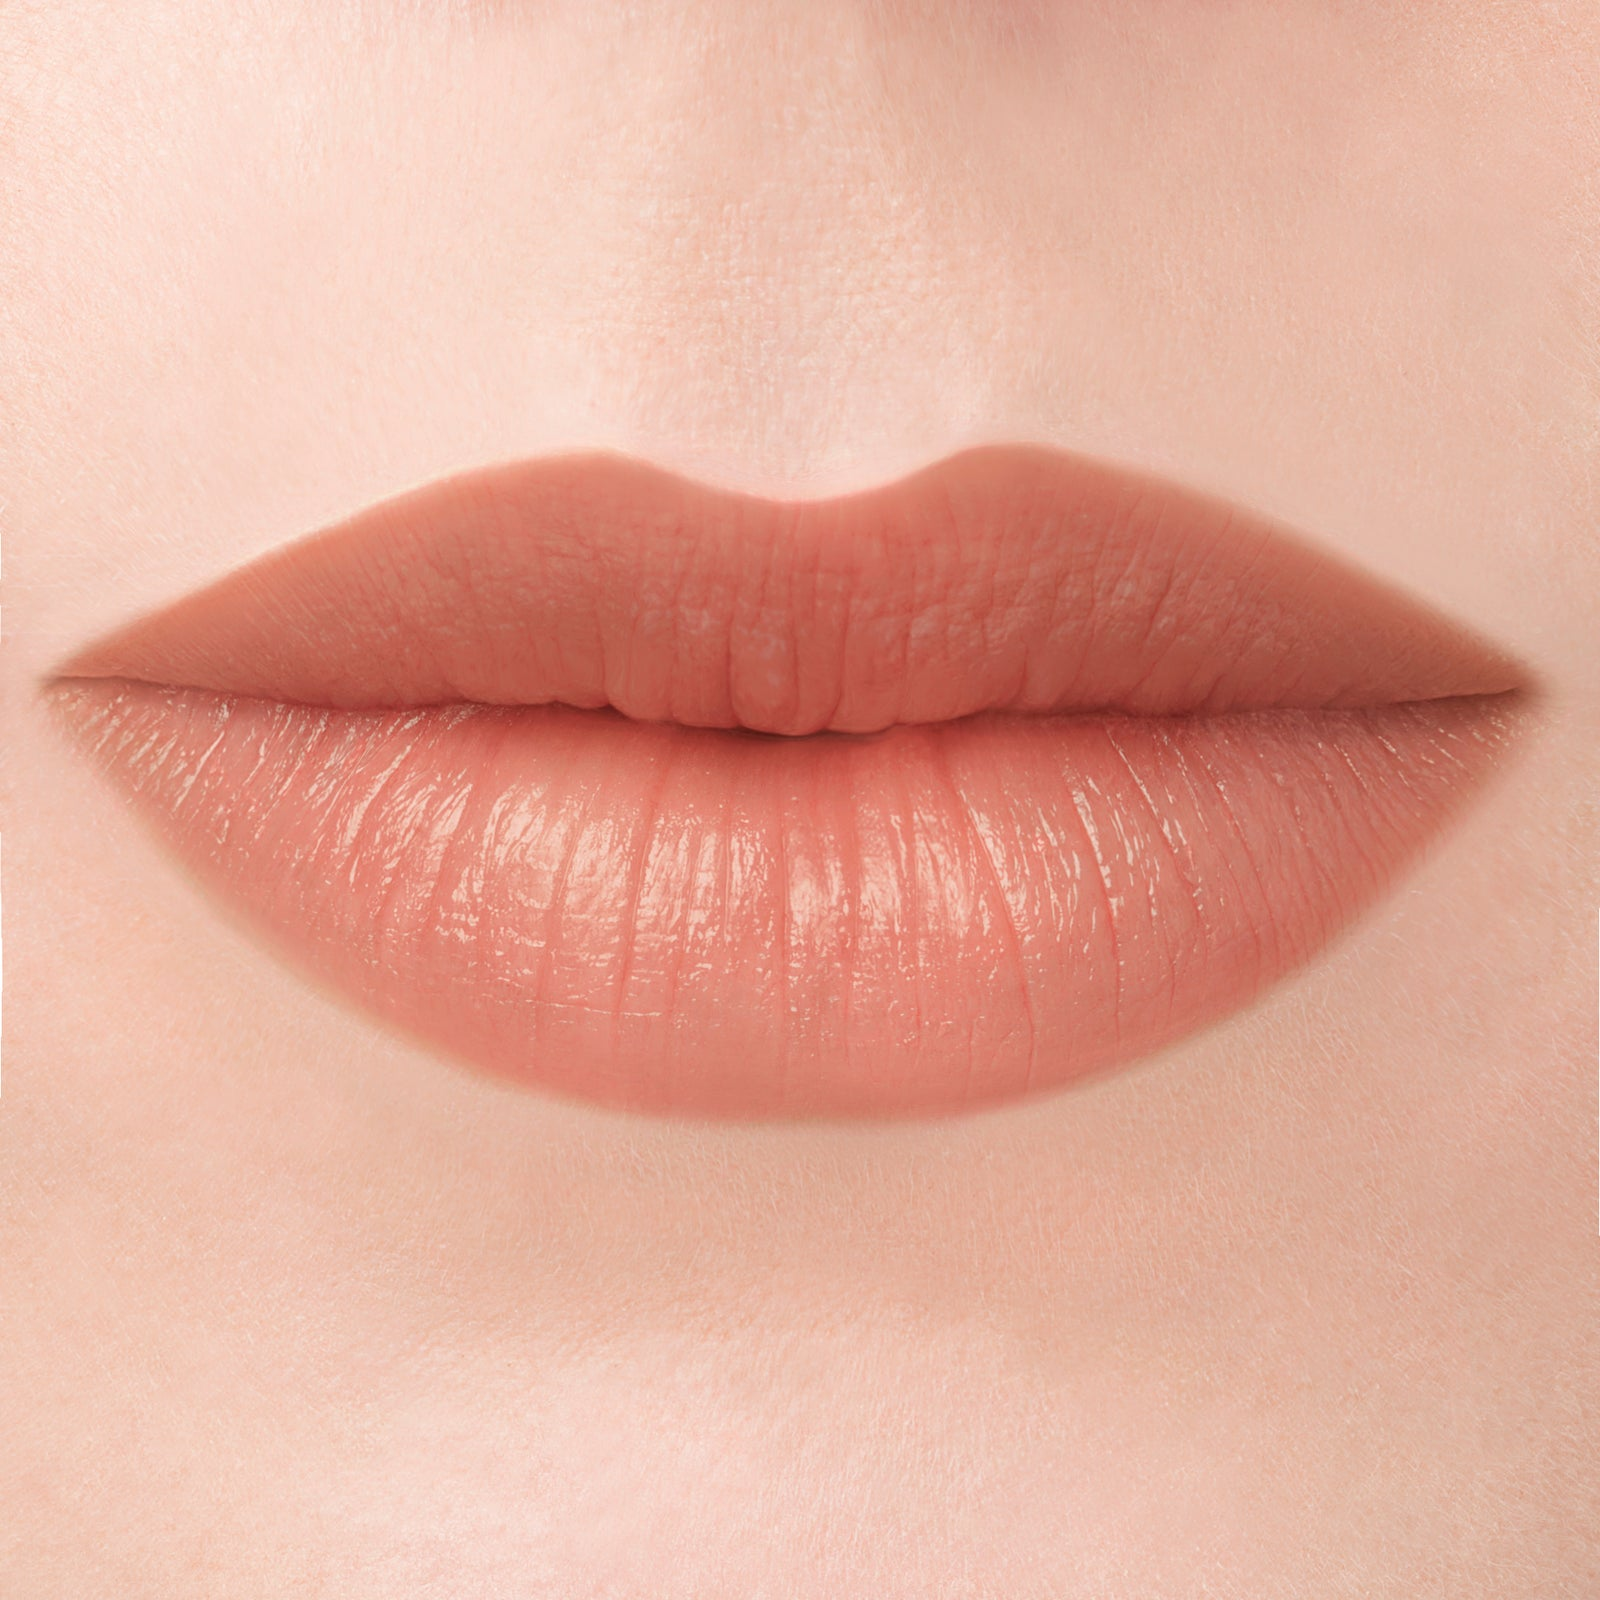 Narcissus Enchanted Lip Sheer swatch nude lipstick your lips but better YLBB shade